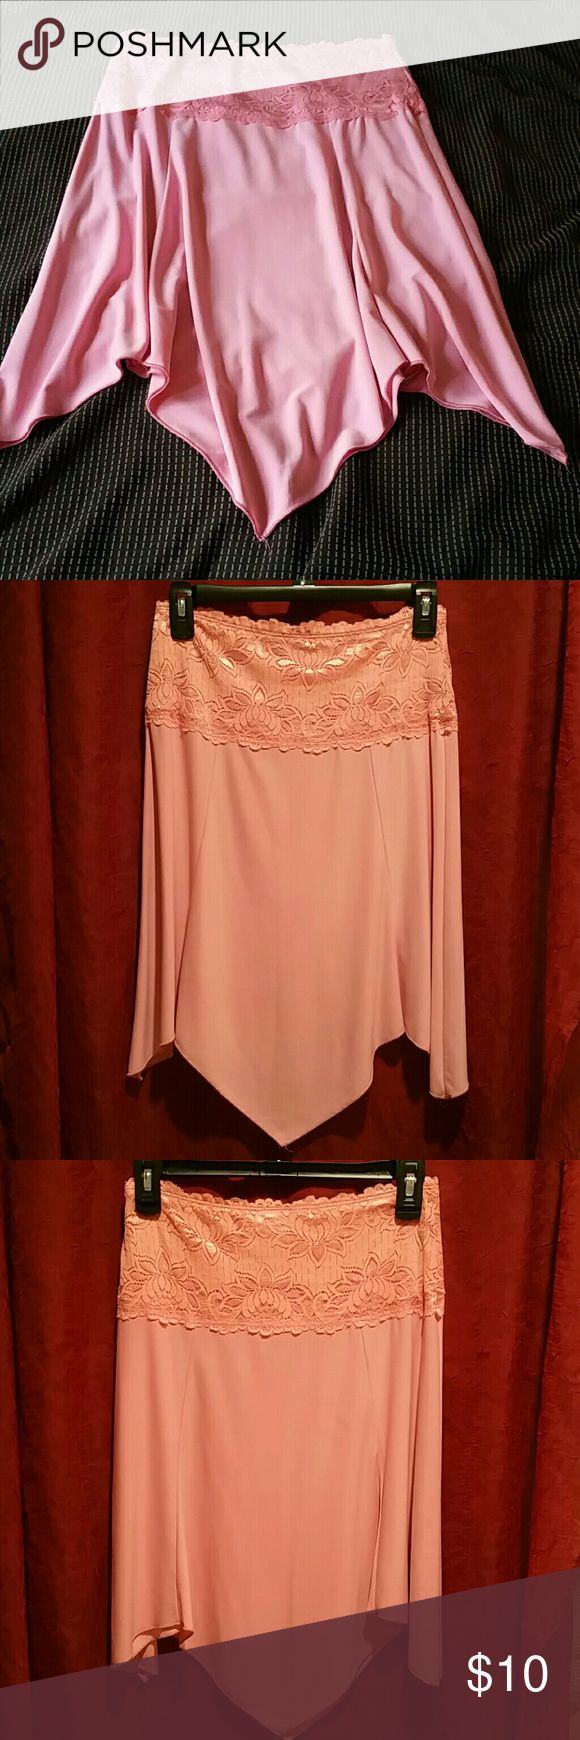 Le Chateau slinky, flowy knee-length skirt Vintage pink slinky, stretchy, flowy skirt. Waist band in lace, stretchy pull on style. Purchased from Le Chateau, at that time, a small Canadian boutique. Wore to a few salsa lessons. I'd imagine not a lot of these gems are still floating around. Skirts